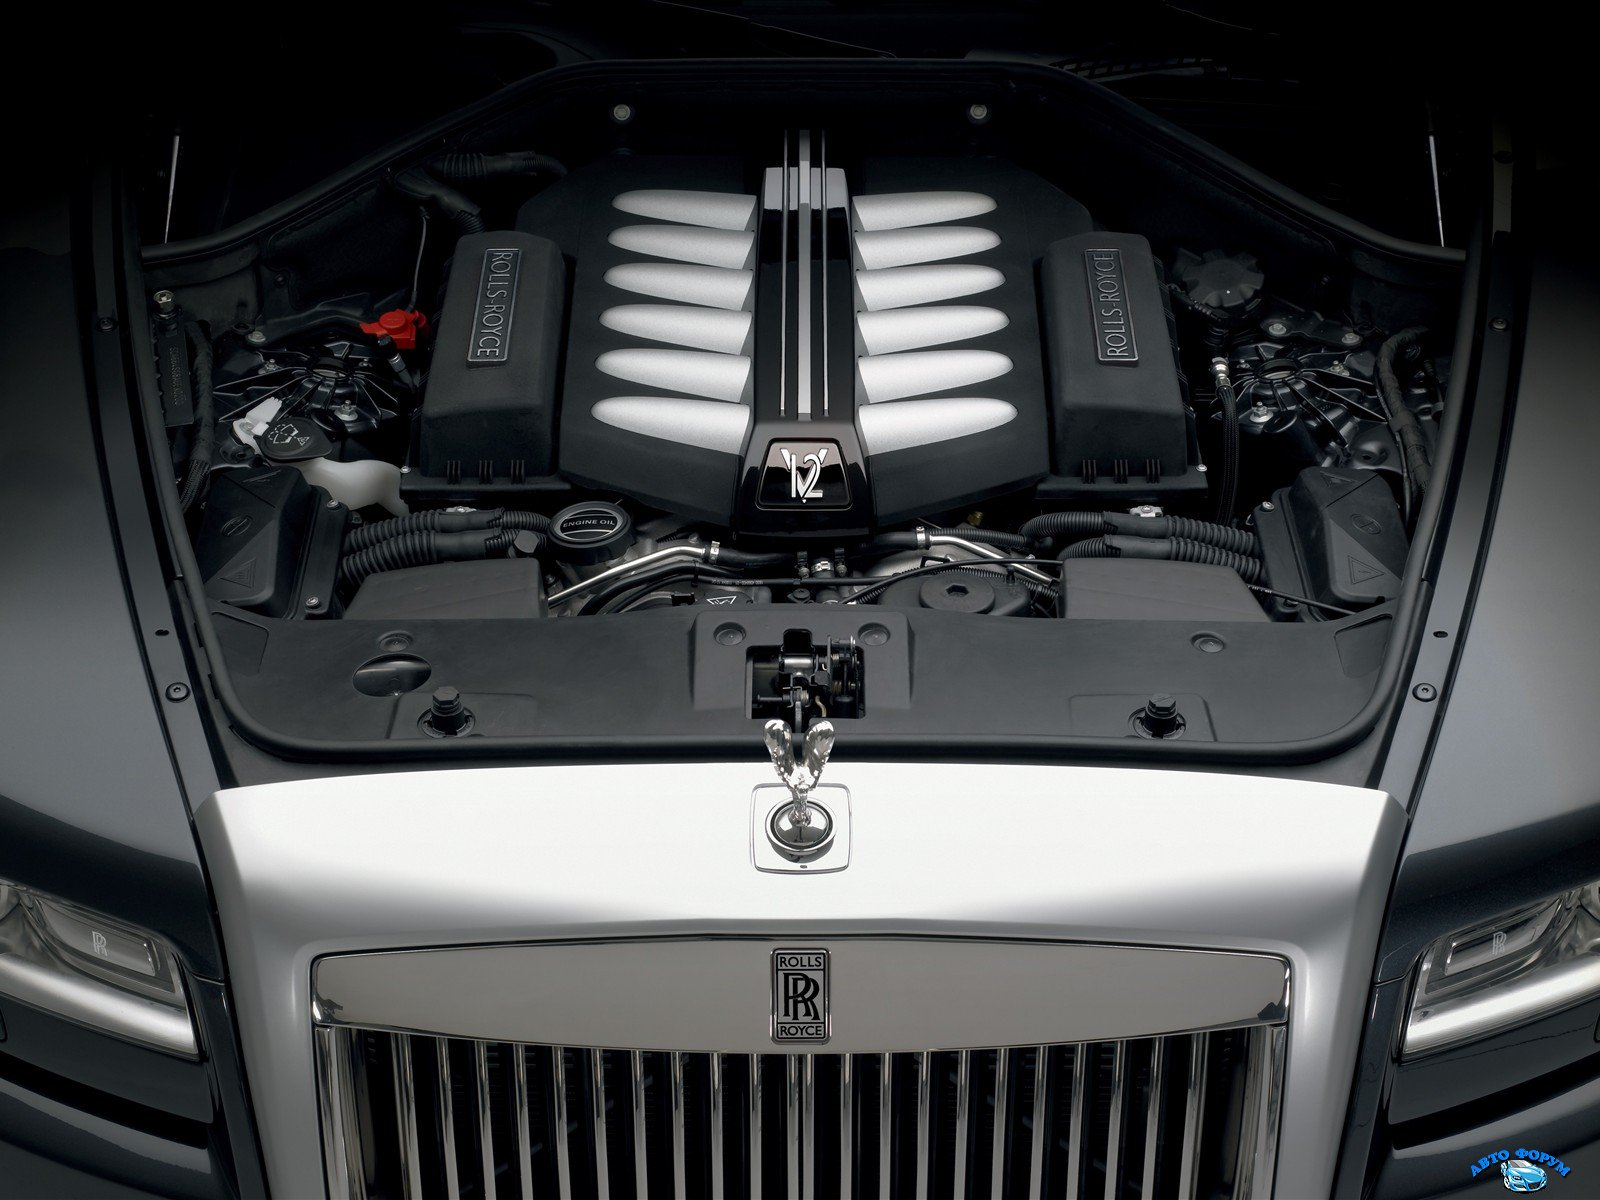 rolls-royce_ghost_engine_23.jpg